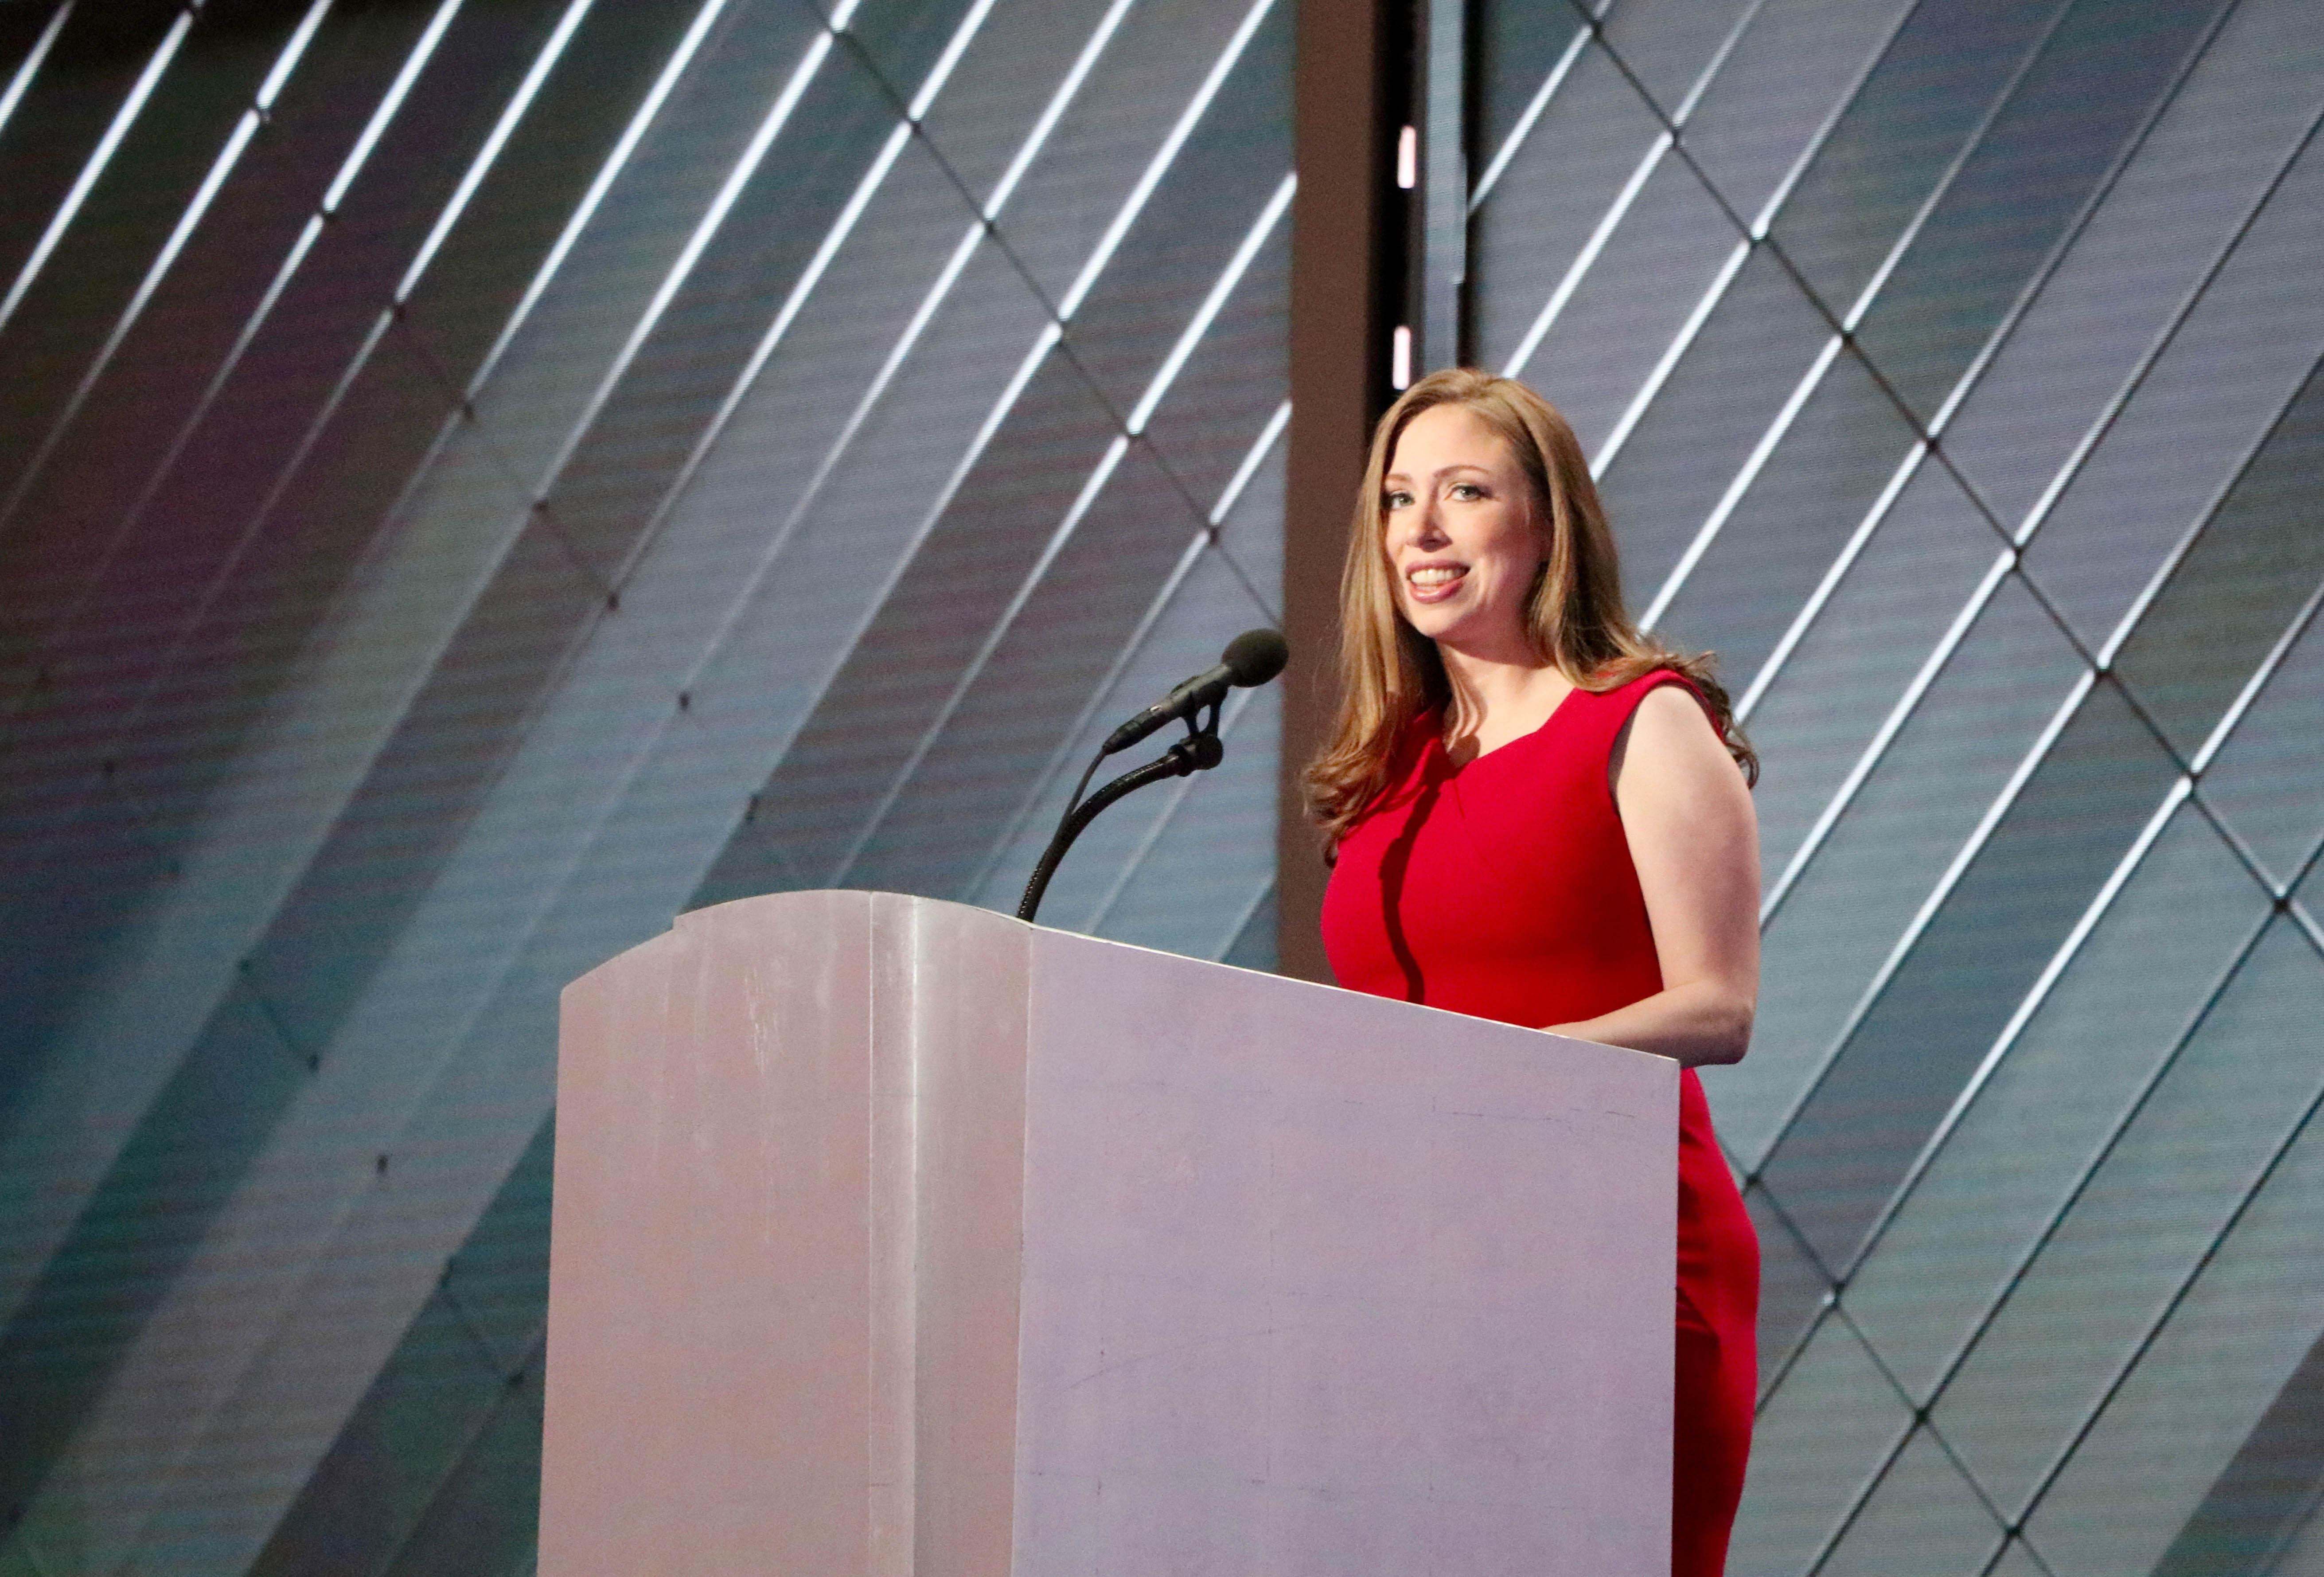 Chelsea Clinton addresses the Democratic National Convention, sharing stories of what she's learned from her mother, Hillary. (Evan Garcia / Chicago Tonight)